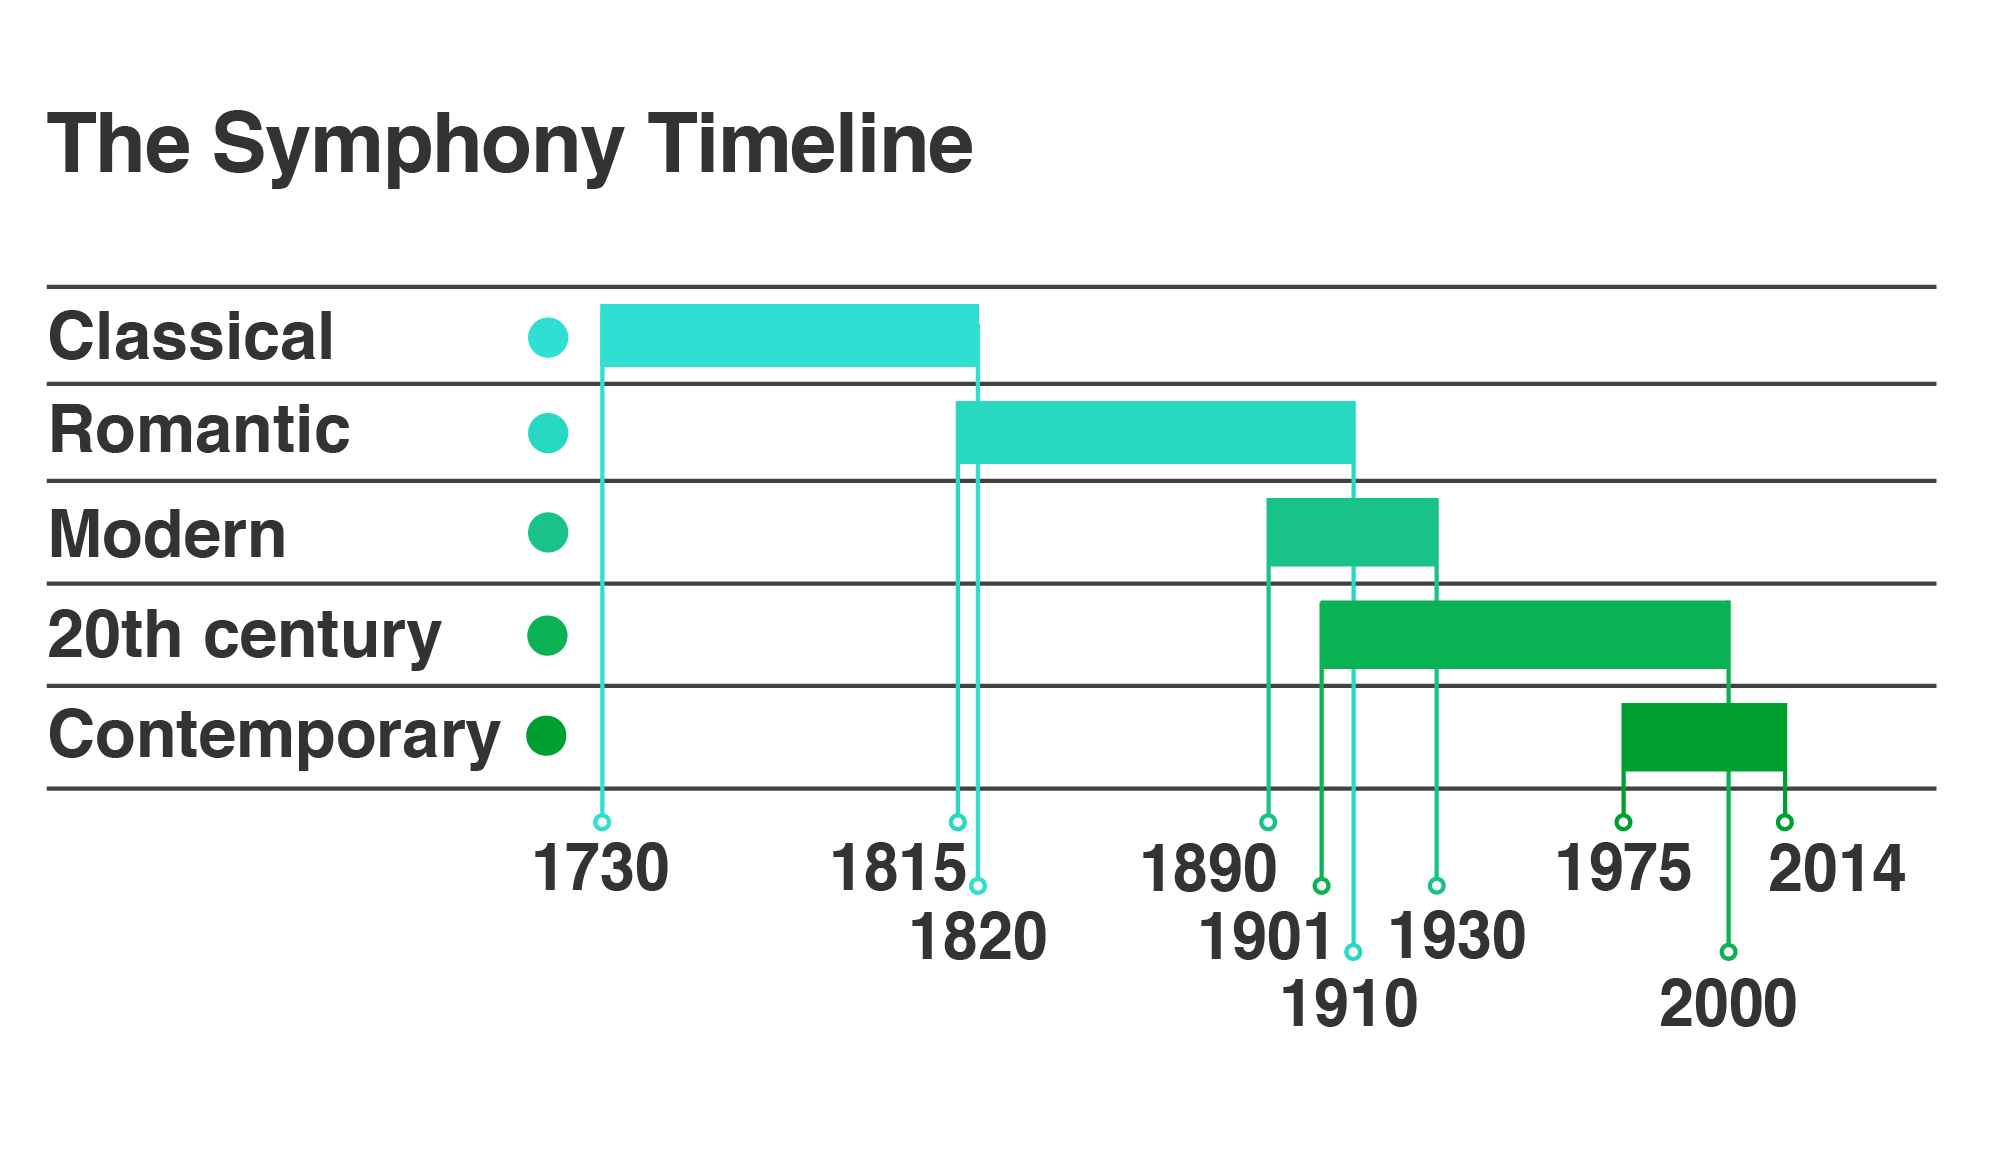 Timeline spans: Classical 1730-1820; Romantic 1815-1910; Modern 1890-1930; C20th 1901-2000; Contemporary 1974-2014